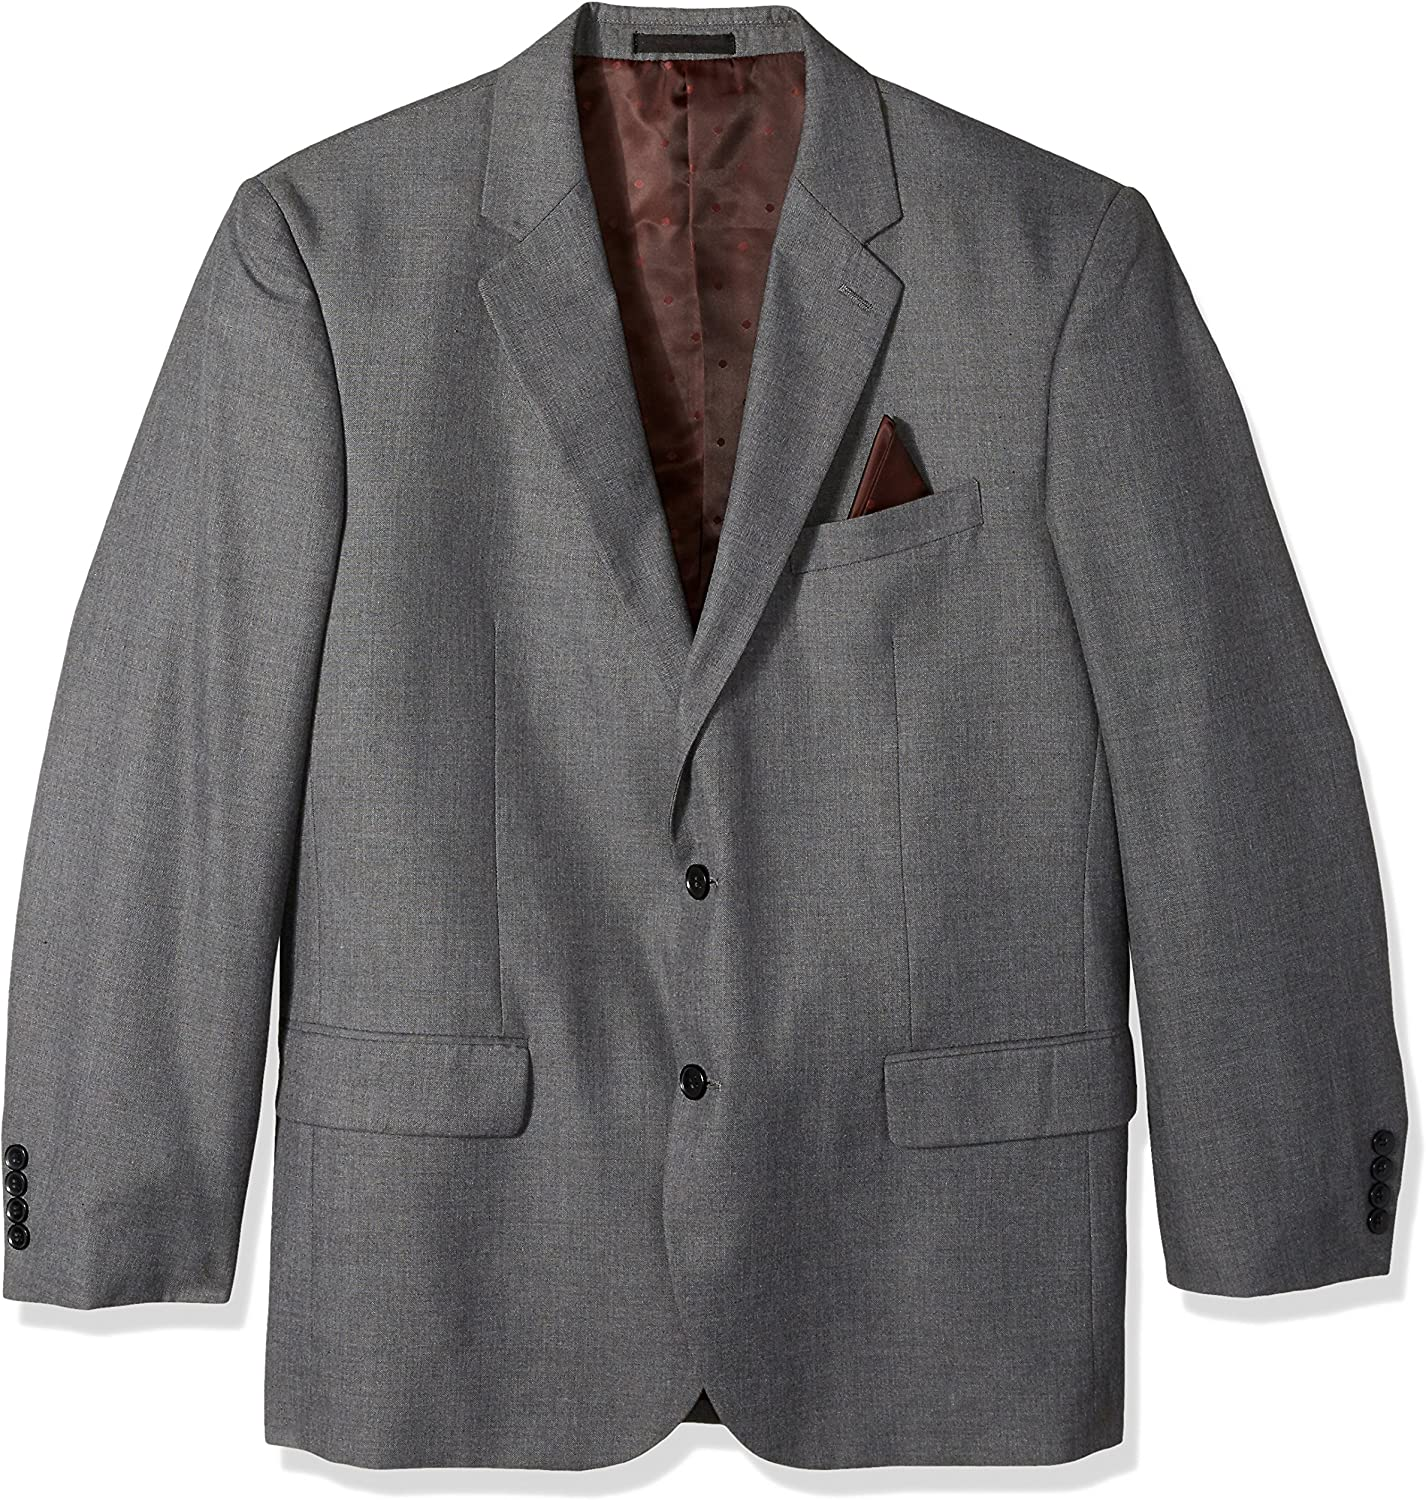 Alexander Julian Colours Men's Big and Tall Single Breasted Modern Fit 2 Button Notch Lapel Suit Separate Jacket